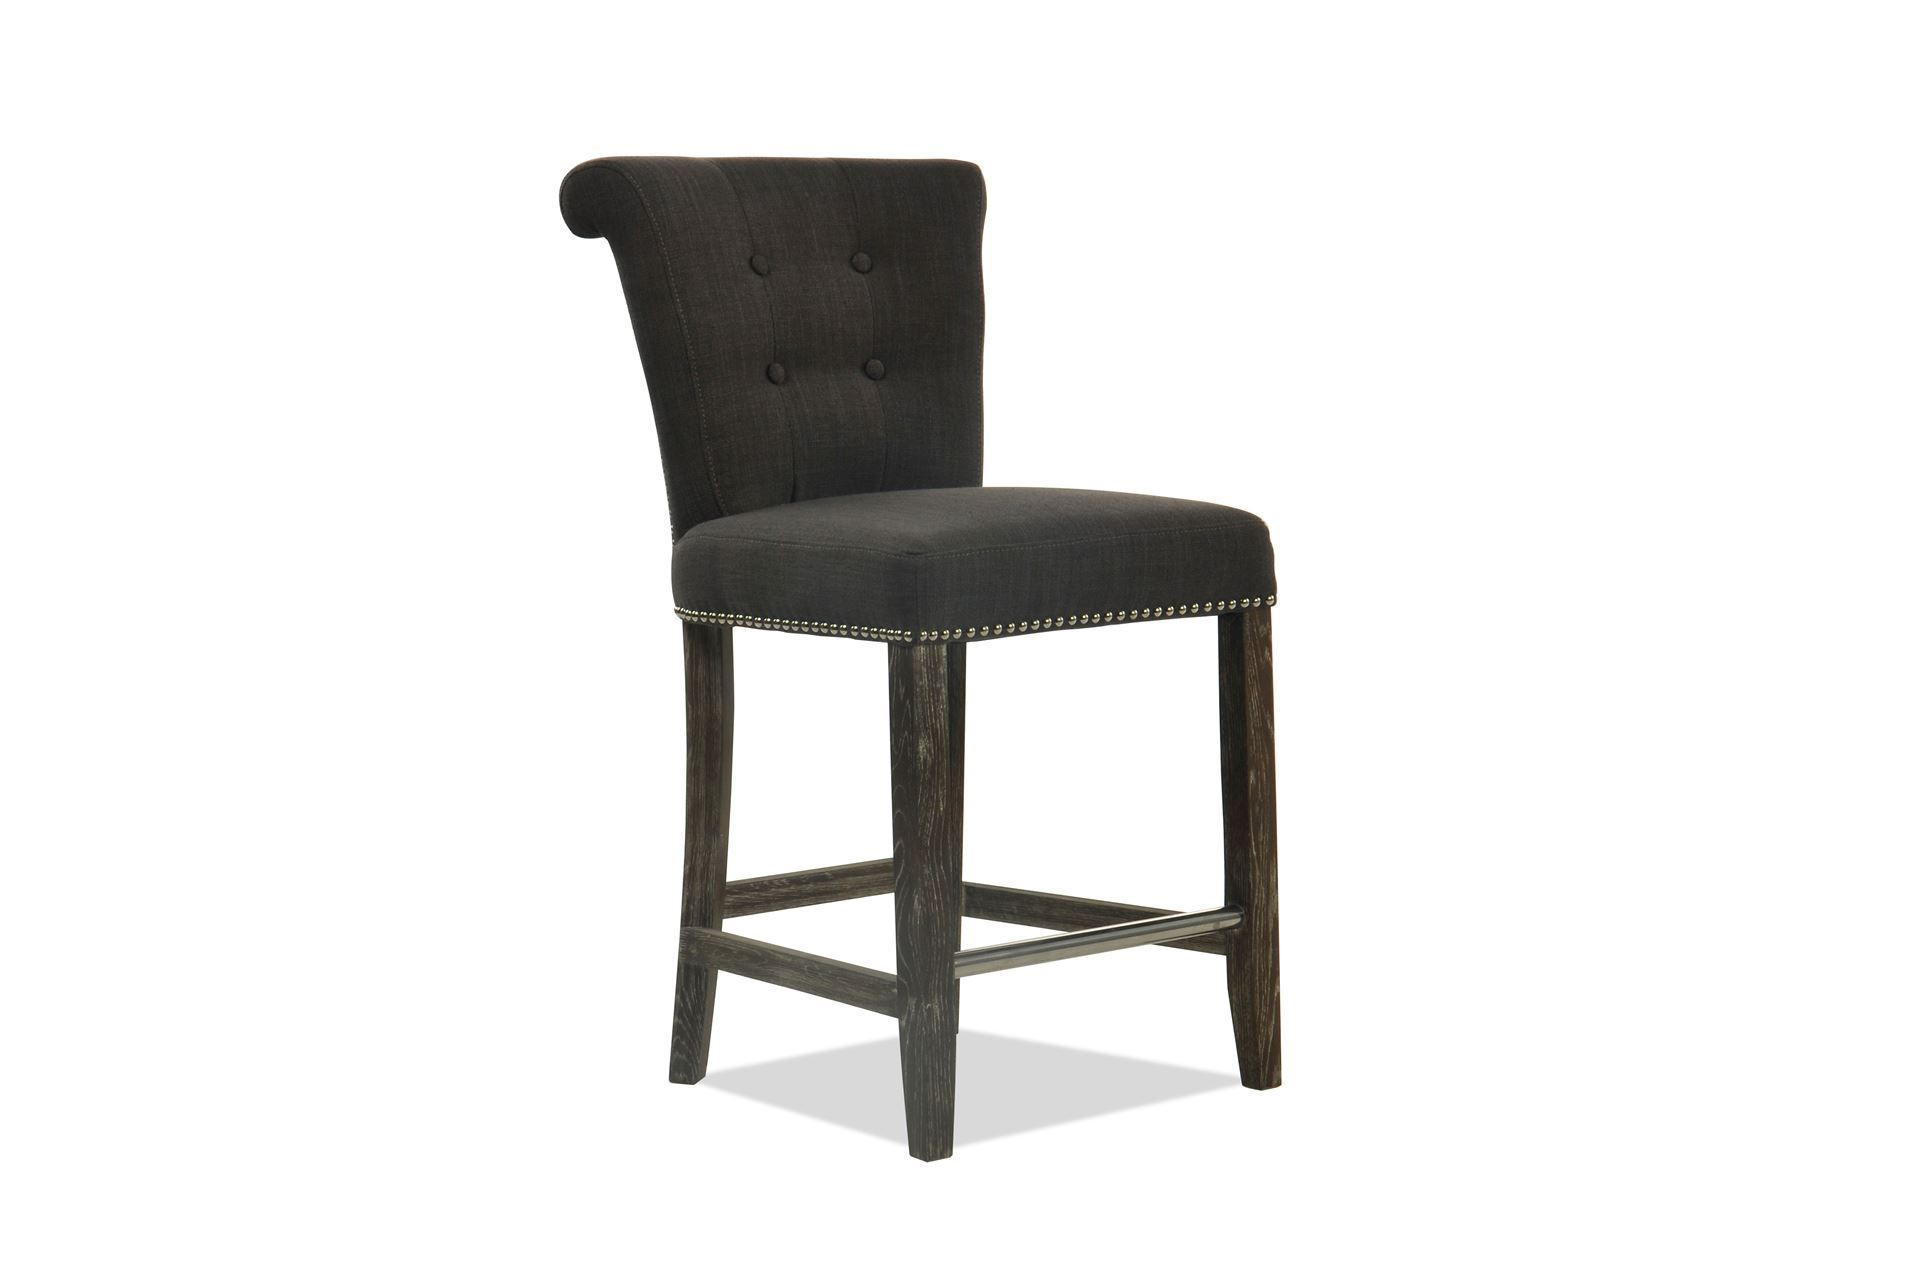 Verdot 24 Inch Barstool. Living Spaces $250